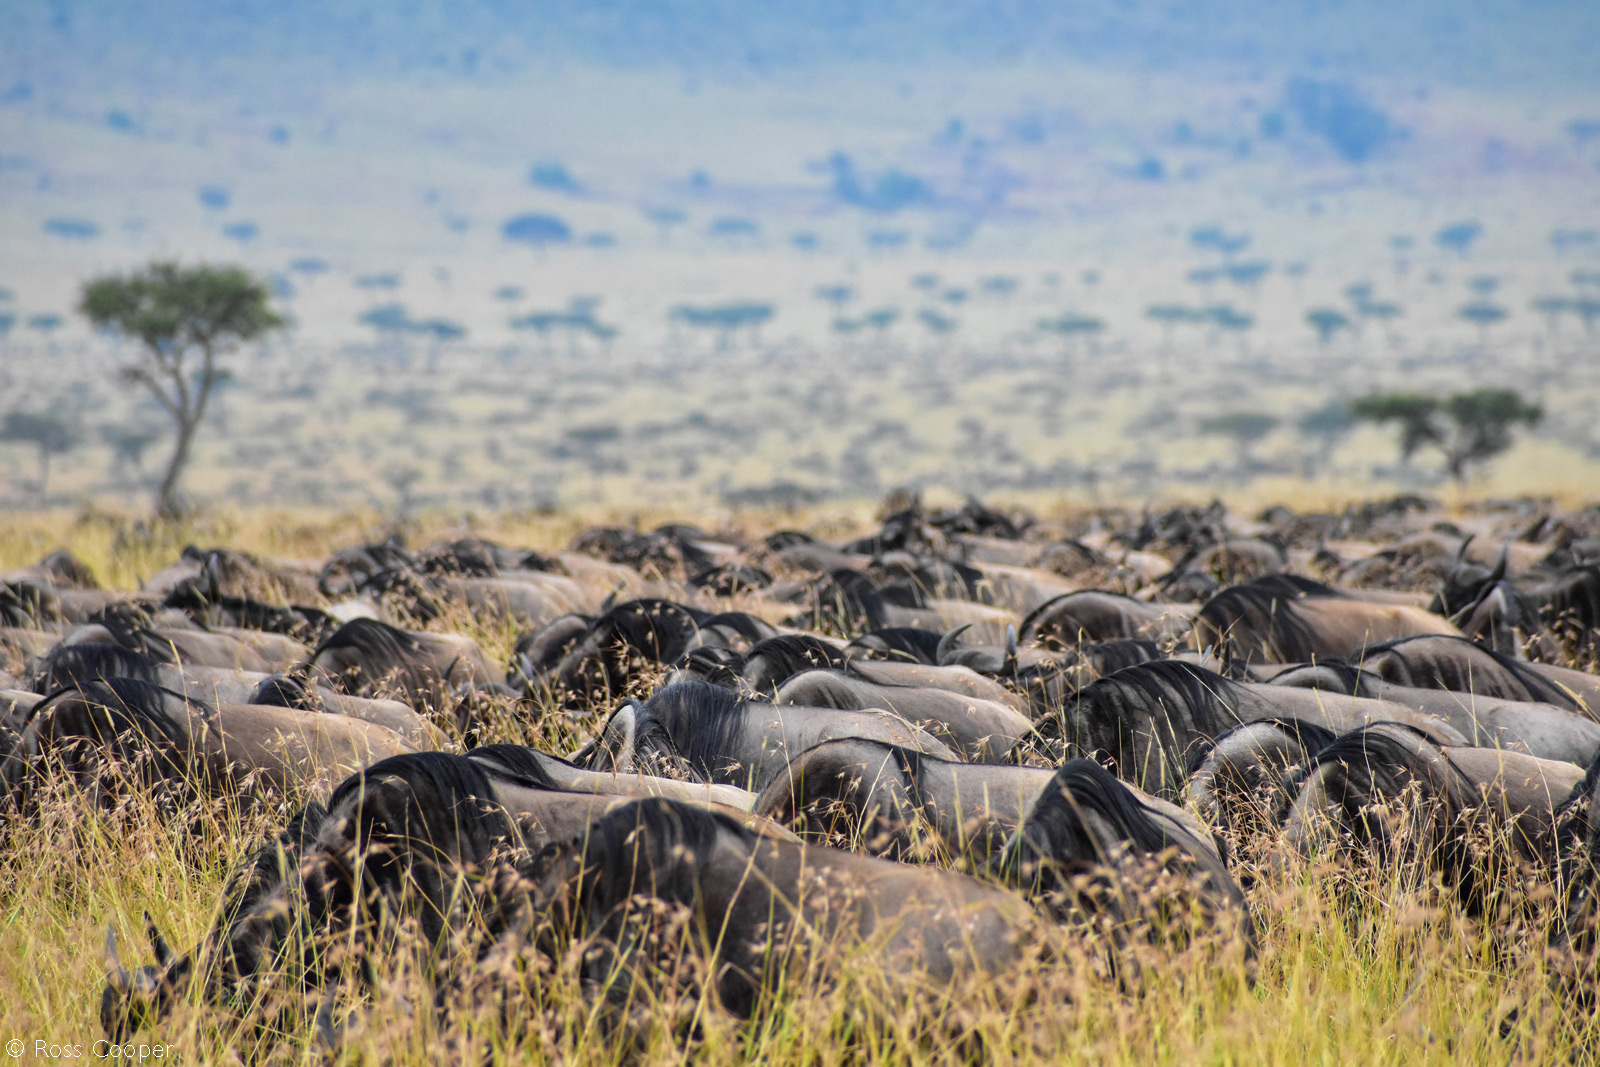 An endless sea of wildebeest during the Great Migration. Maasai Mara National Reserve, Kenya © Ross Cooper